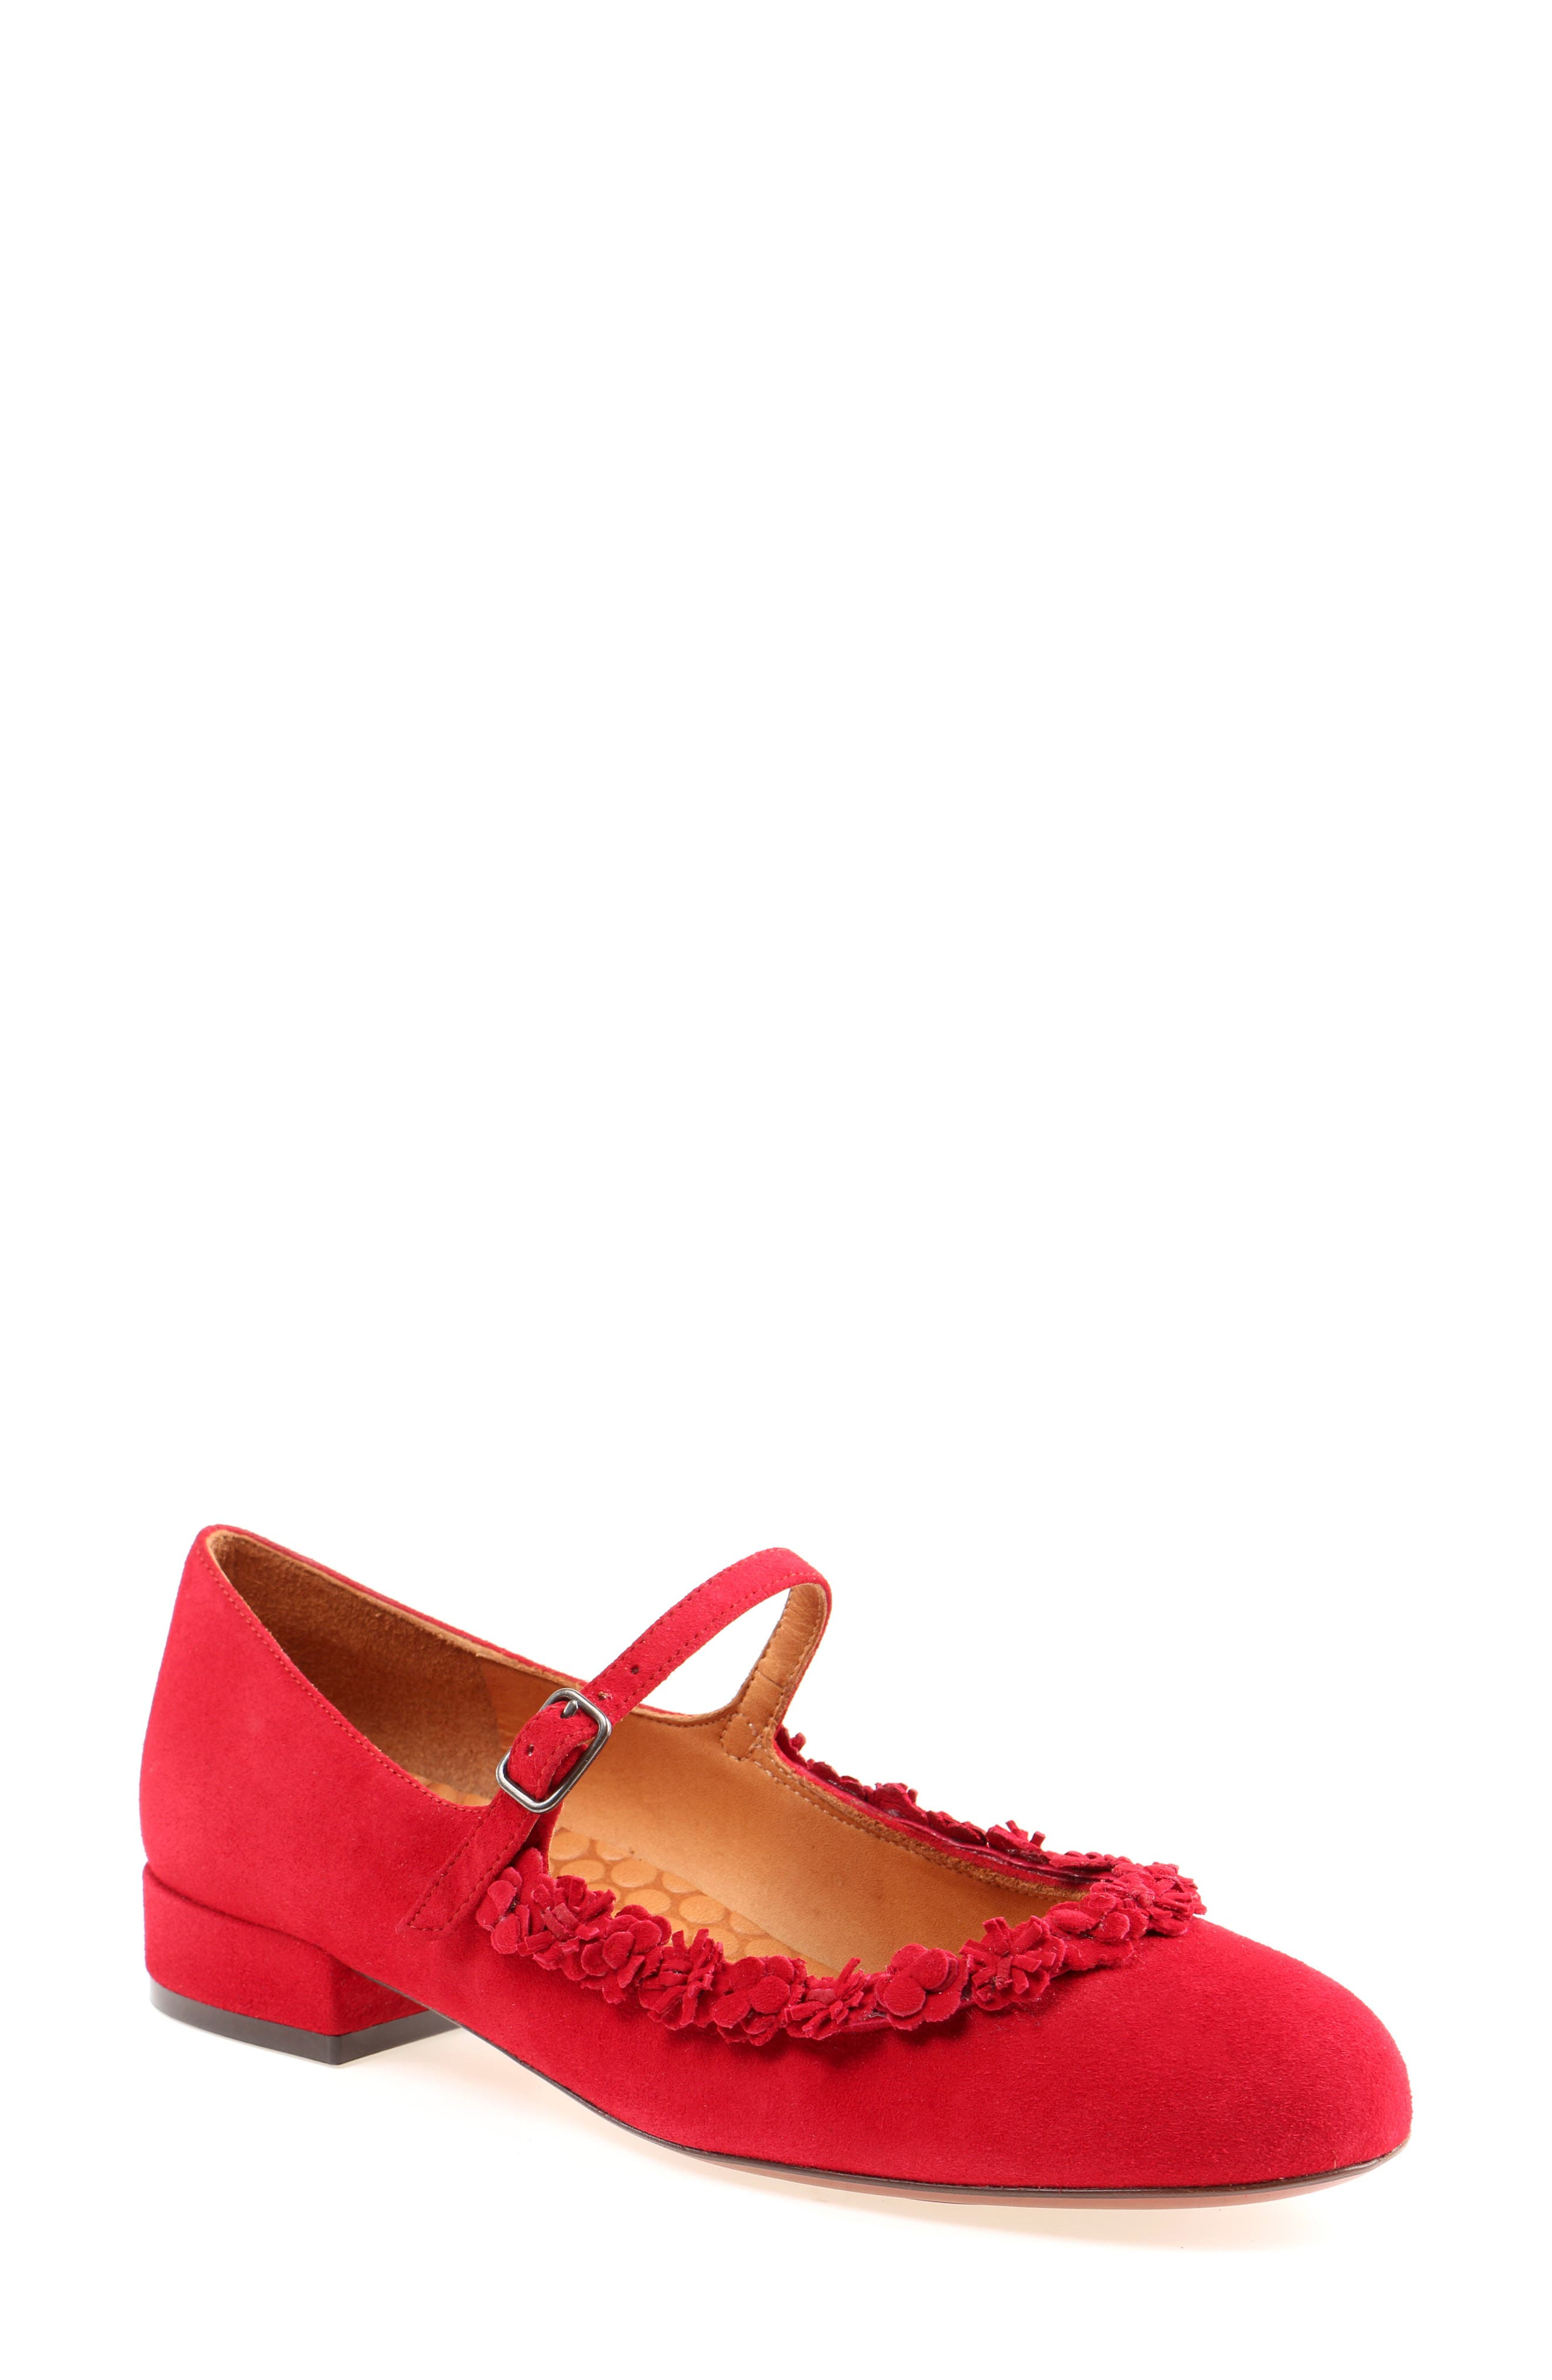 Rizo Mary Jane Flat,                         Main,                         color, Red